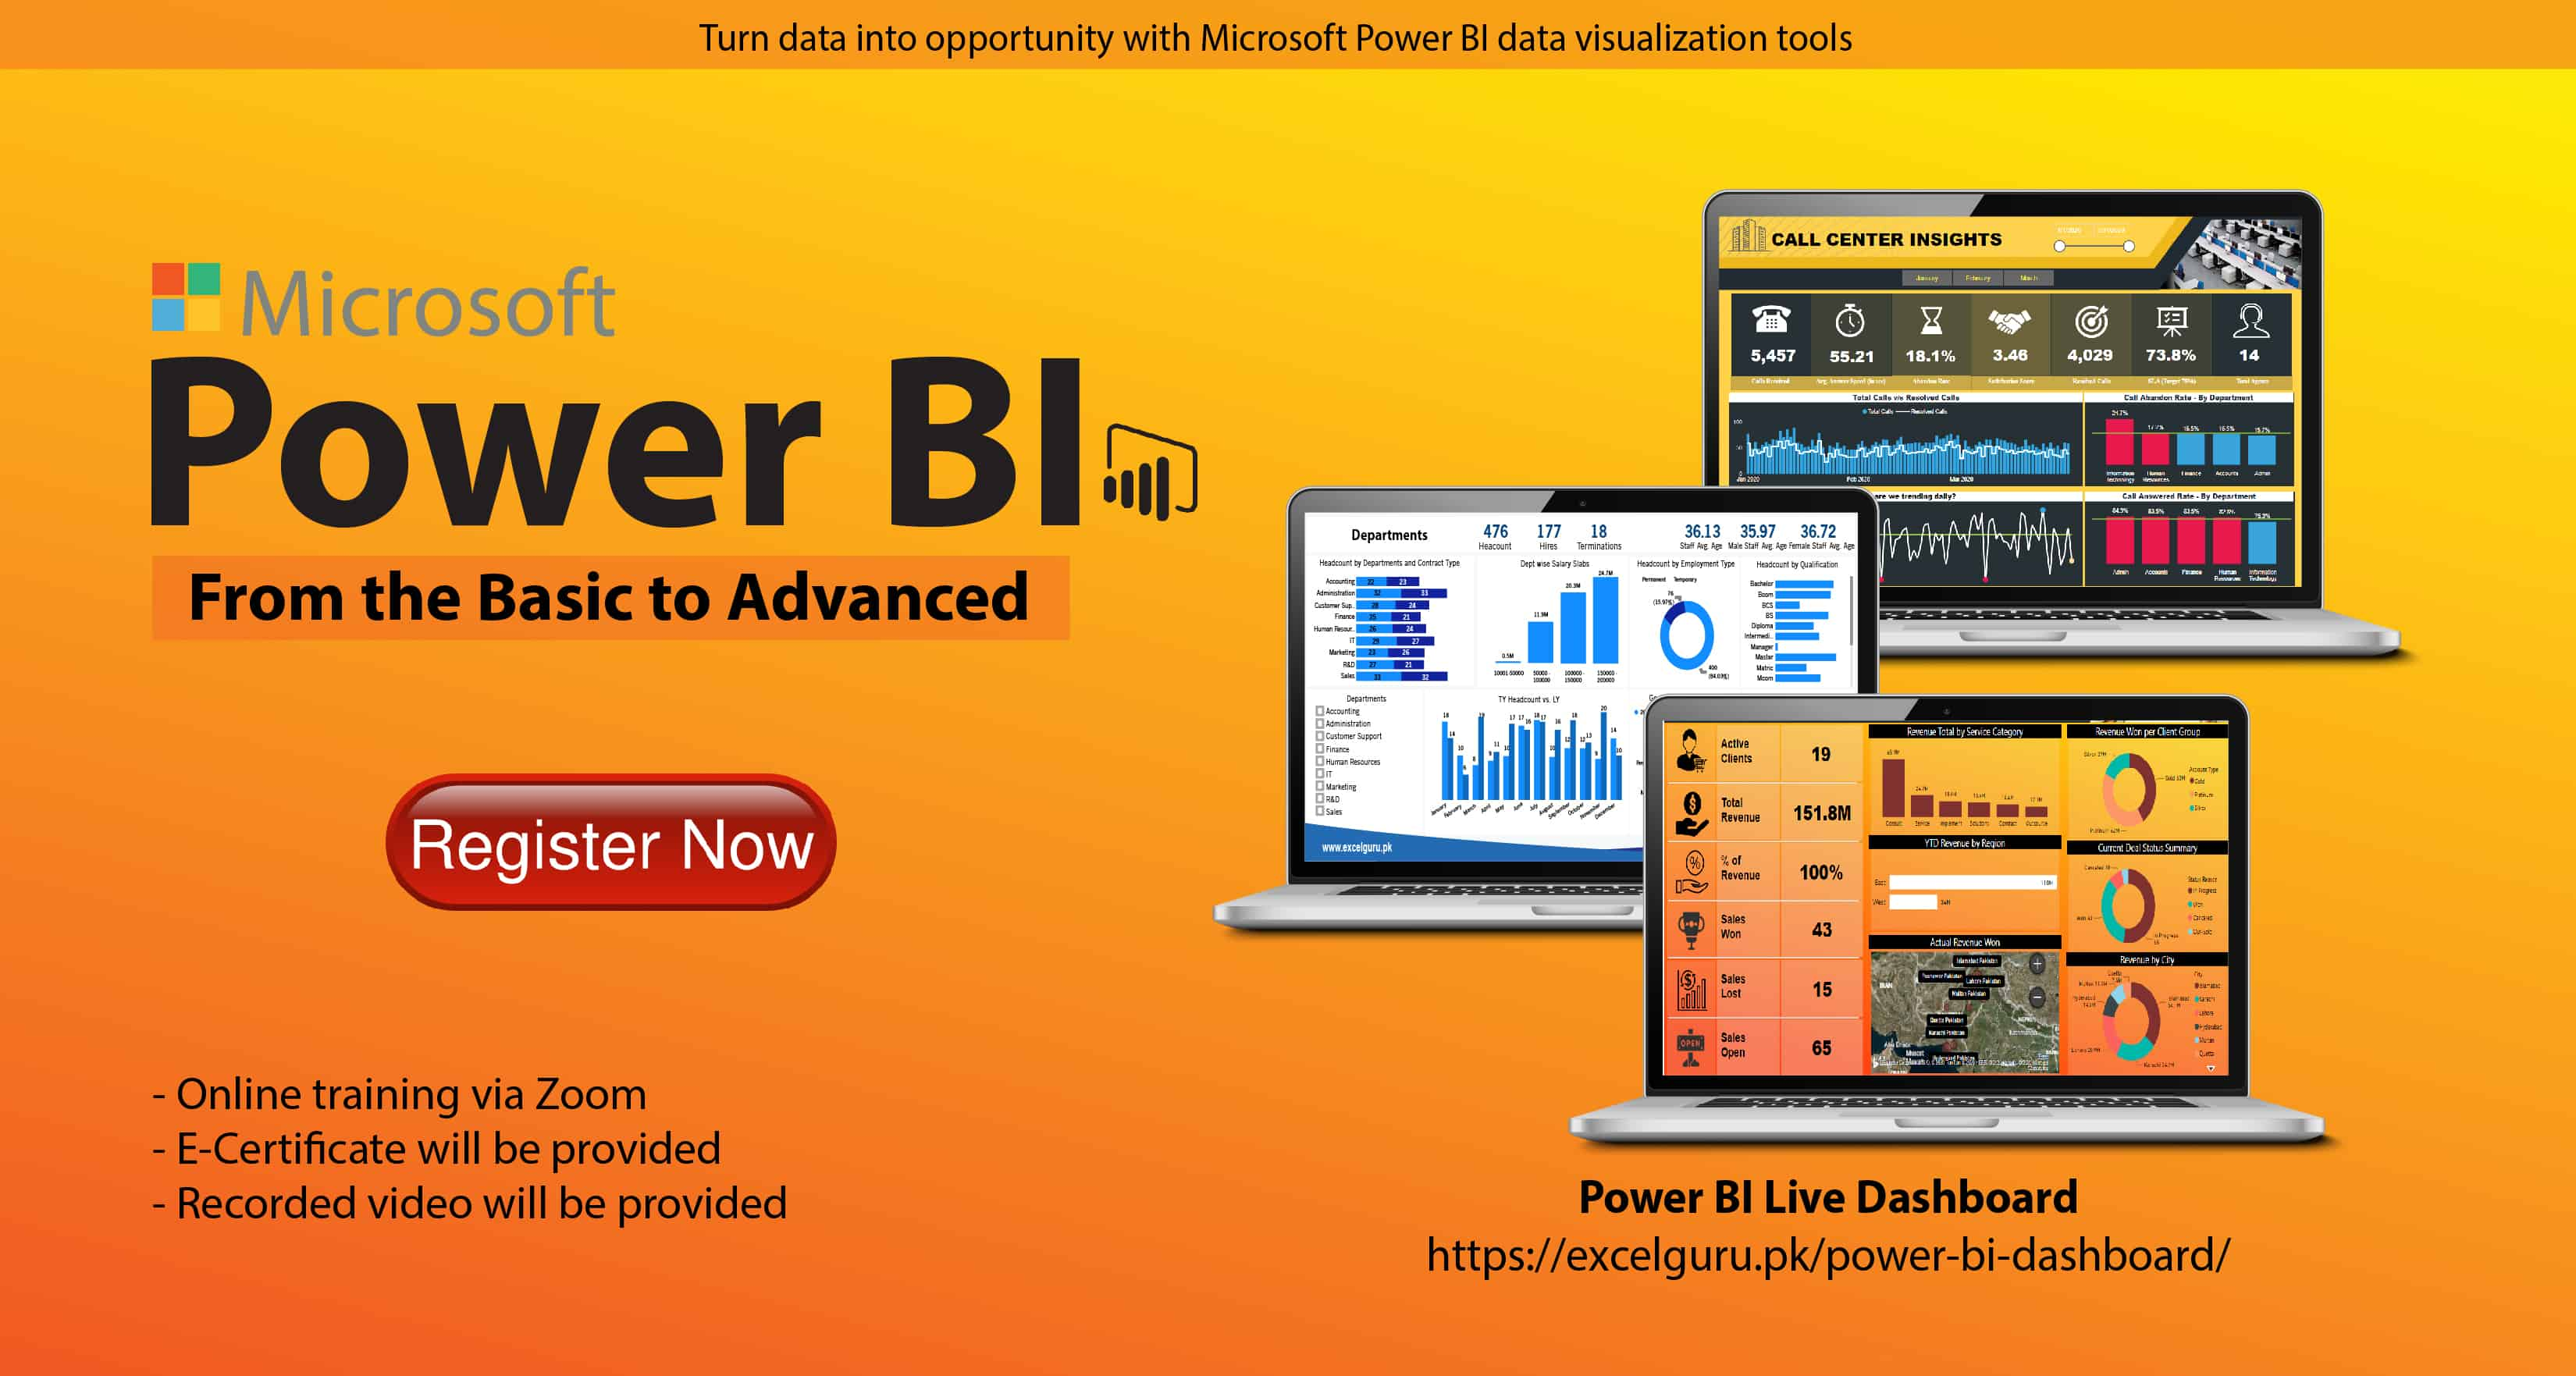 https://excelguru.pk/power-bi-training/